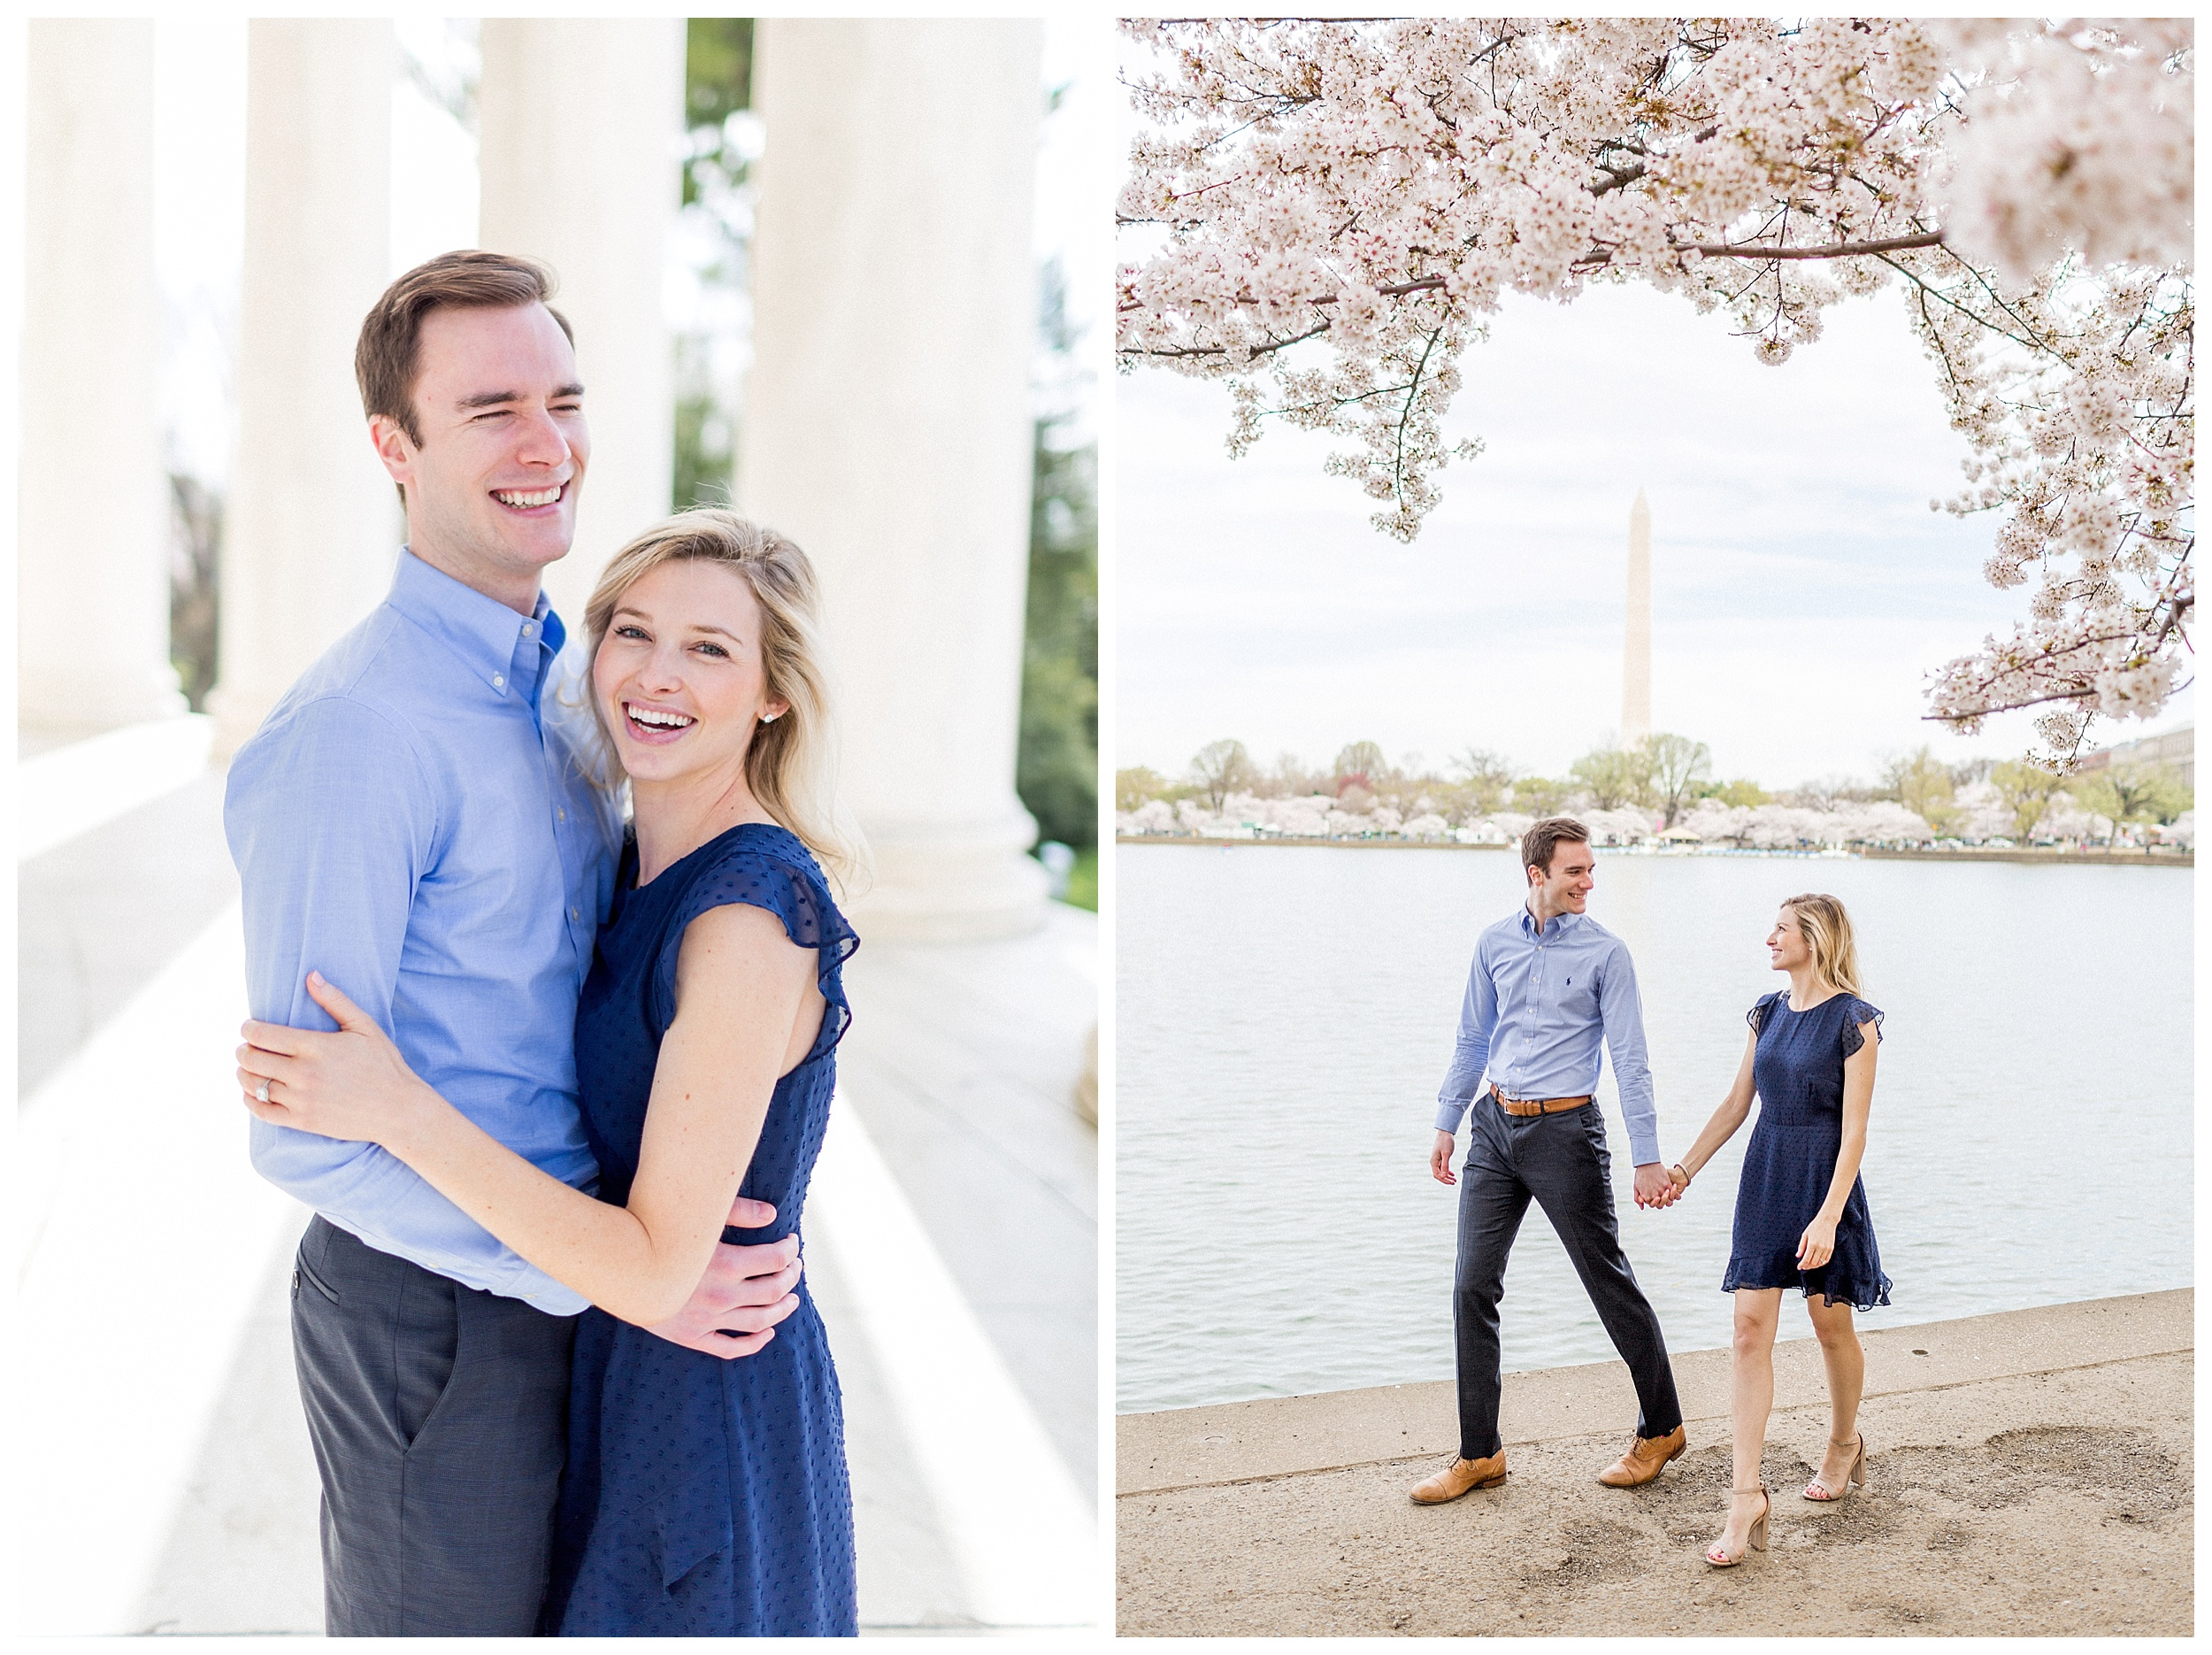 District of Columbia Cherry Blossom Engagement Session_0010.jpg